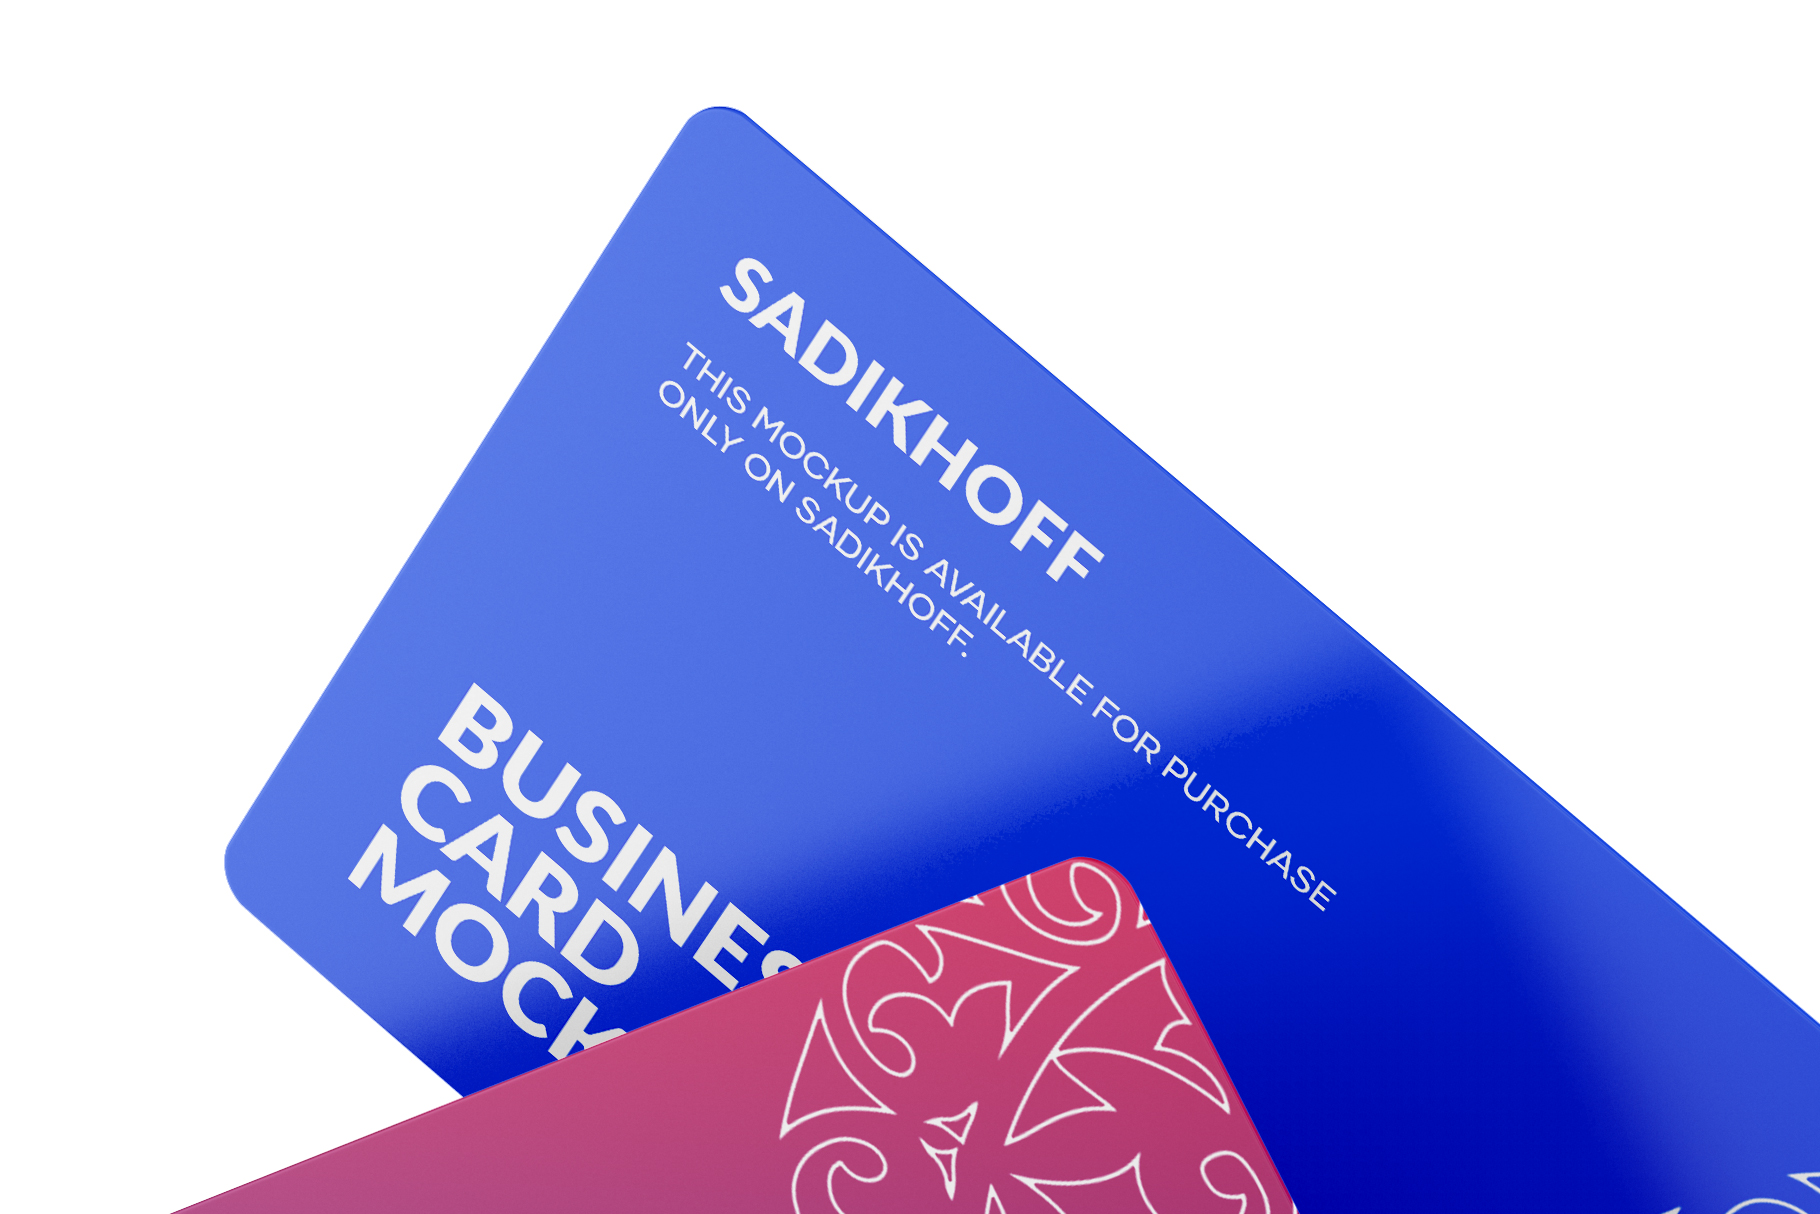 Business Cards Mockup example image 5